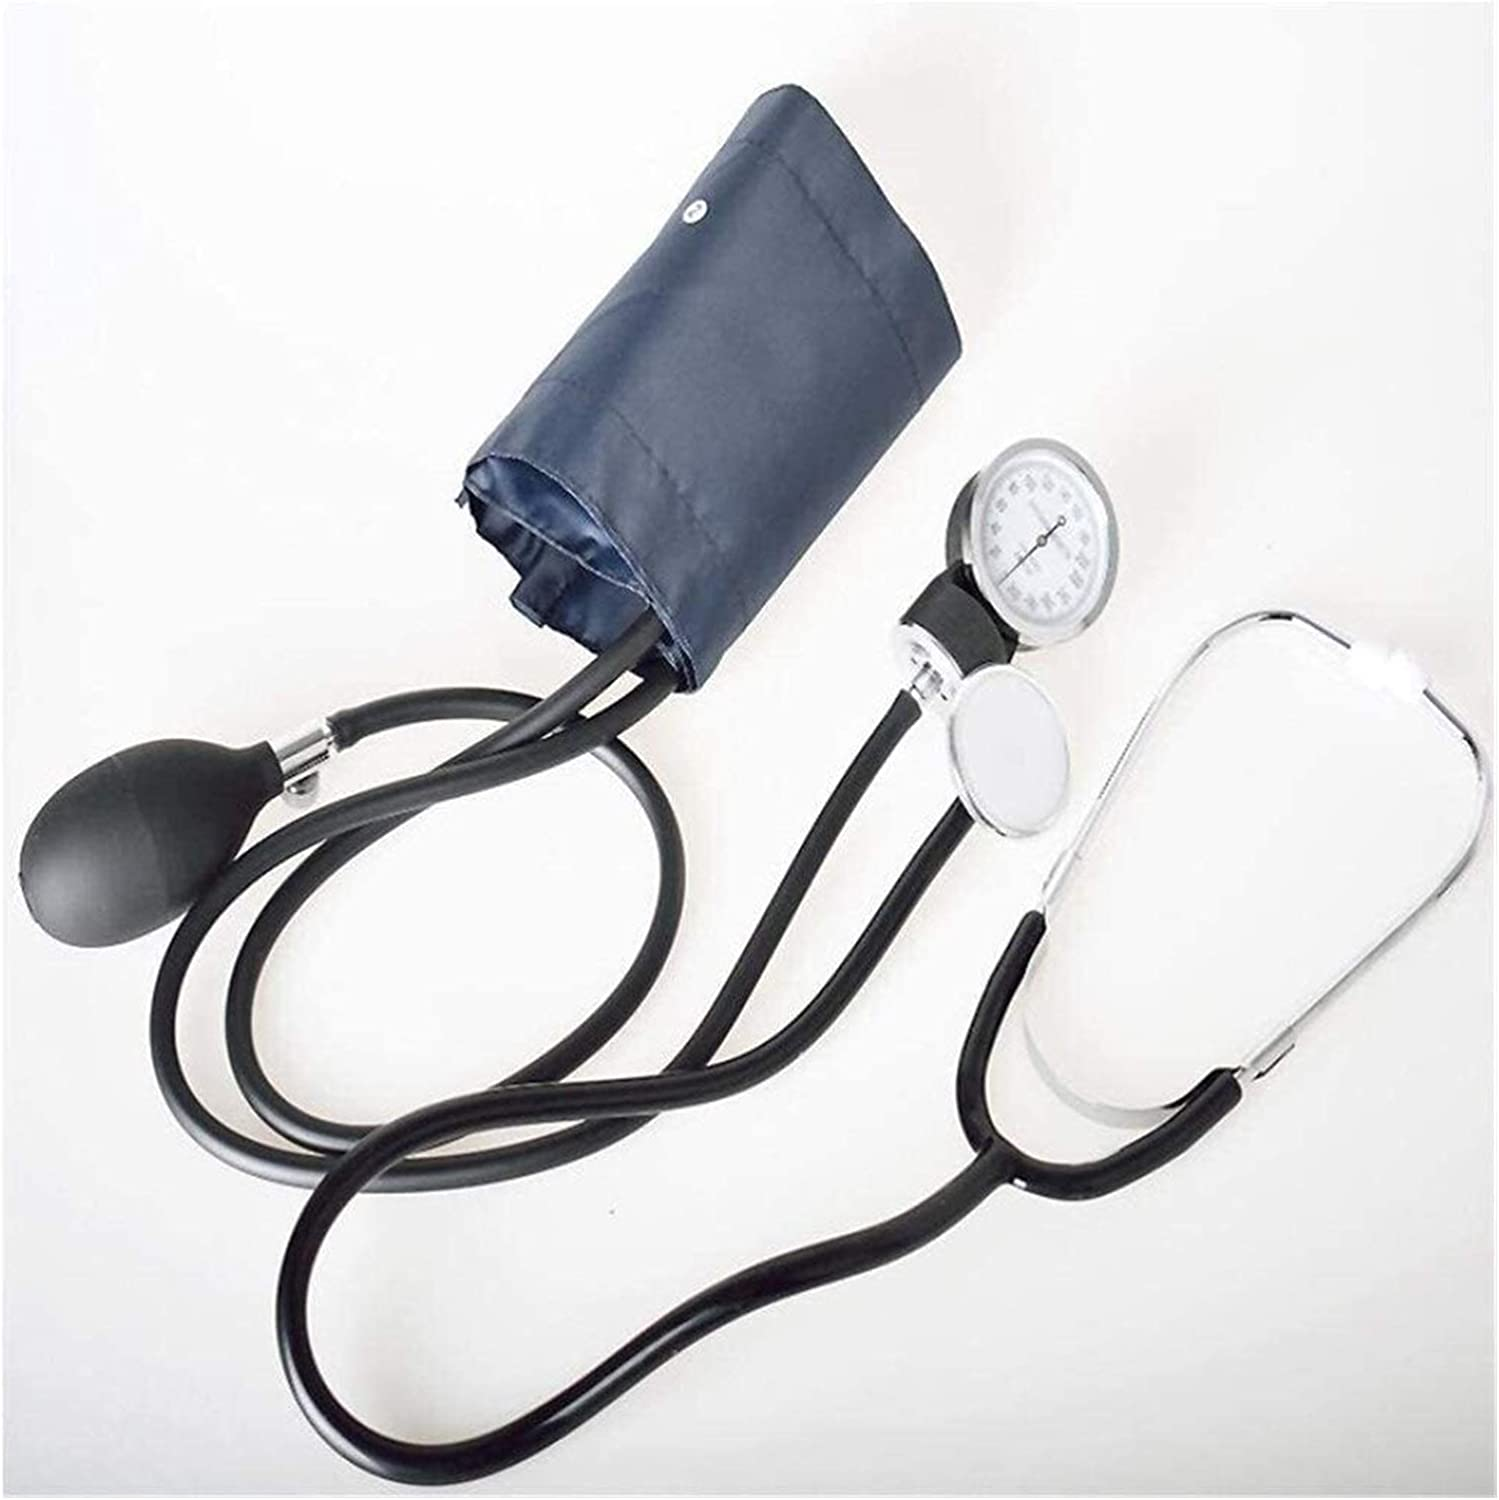 LXYYY Stethoscope Classic Professional Cuff Fees Manufacturer direct delivery free Manual B